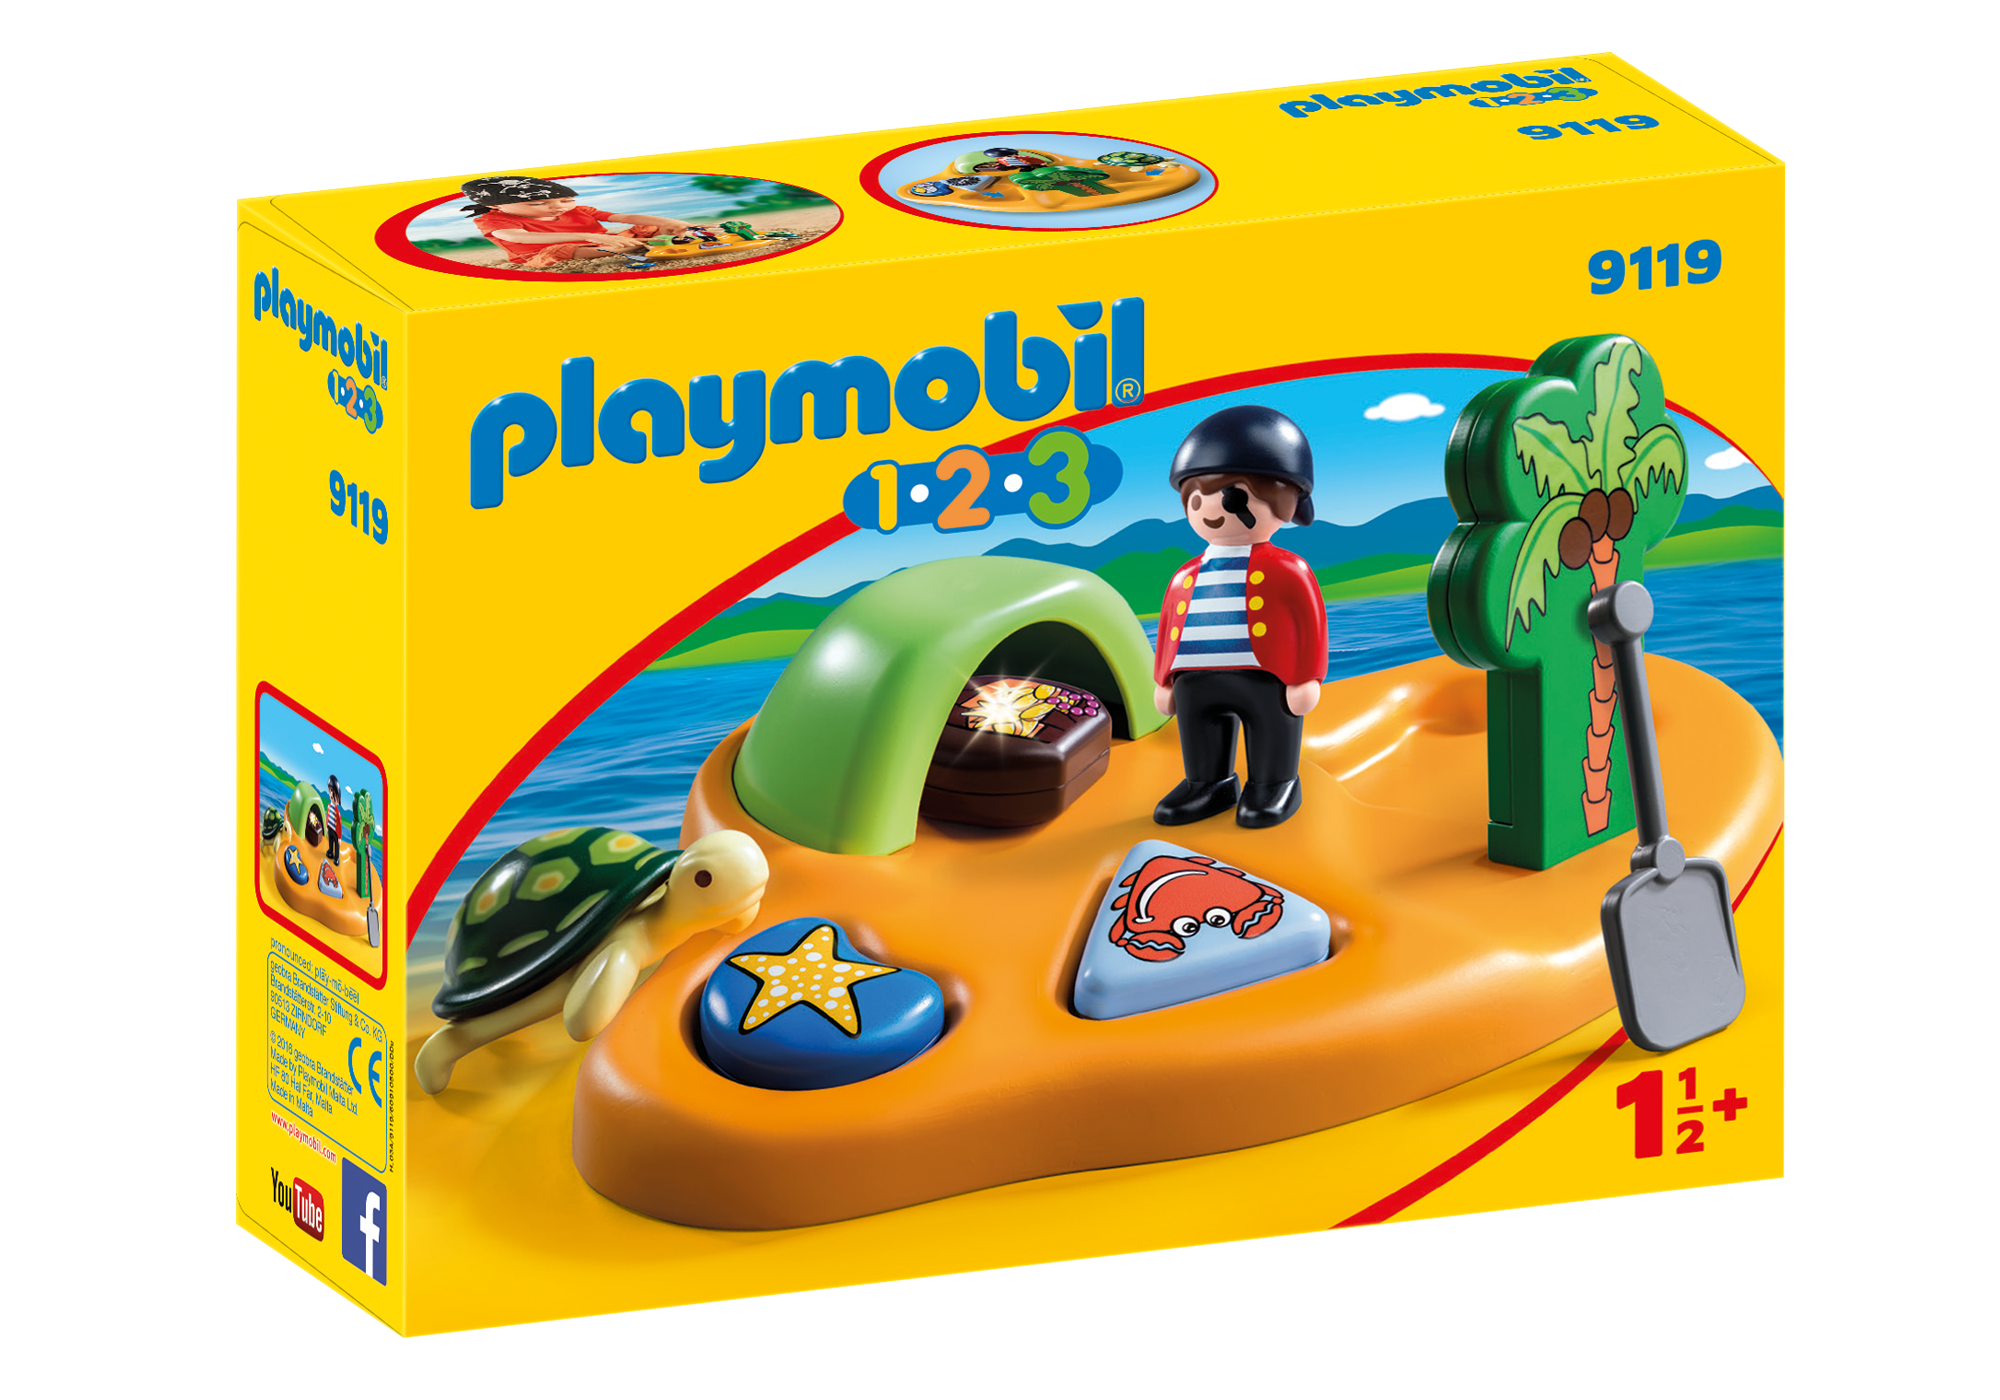 http://media.playmobil.com/i/playmobil/9119_product_box_front/1.2.3 Isla Pirata